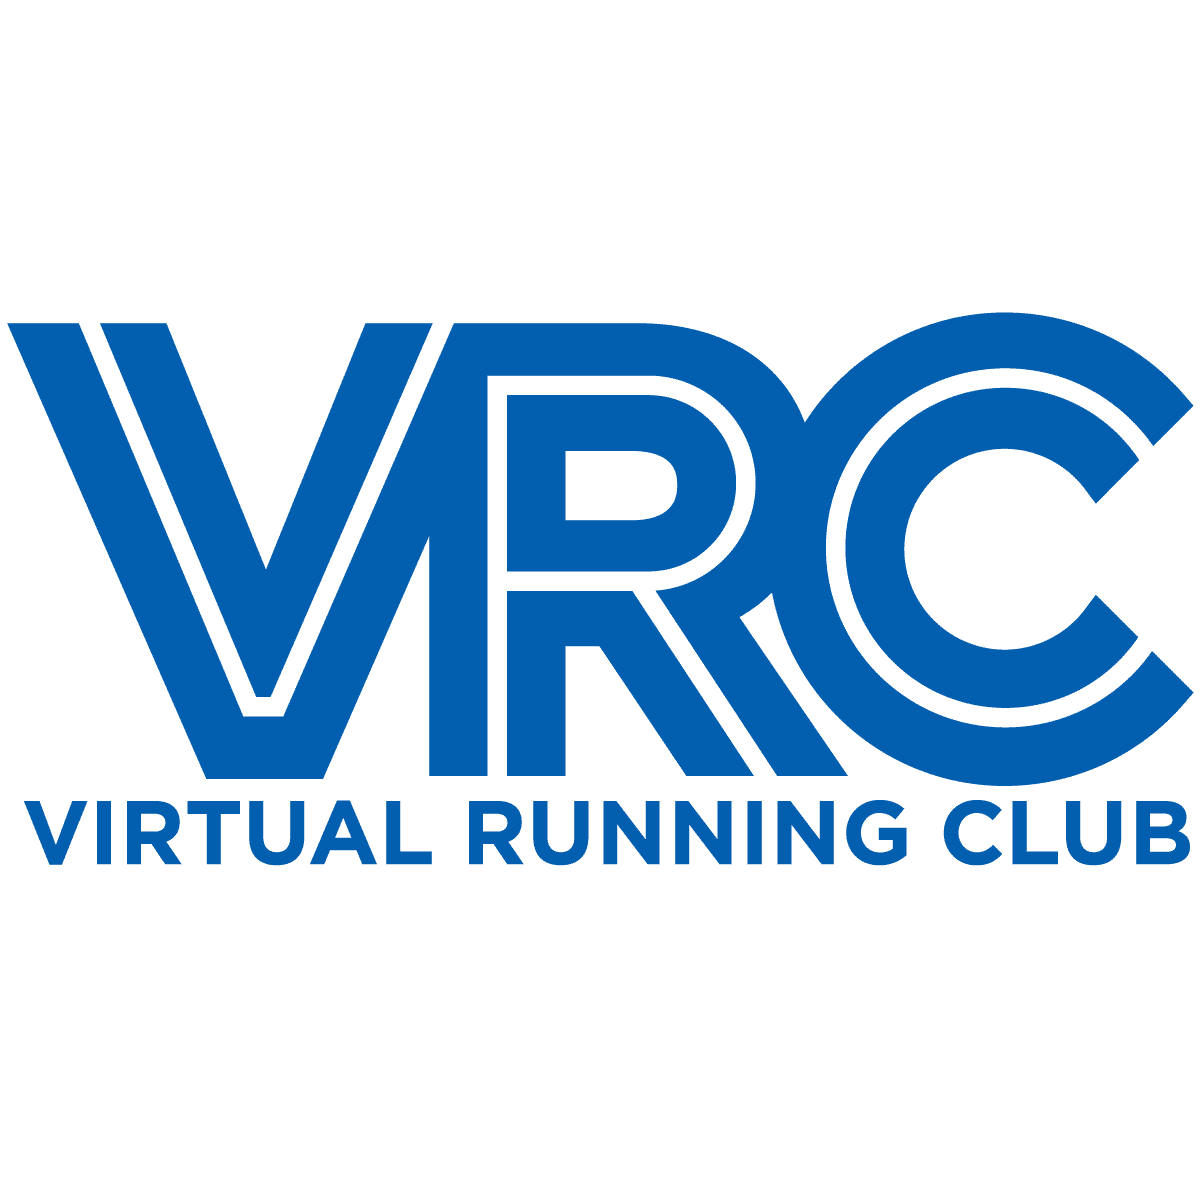 Virtual Running Club Logo